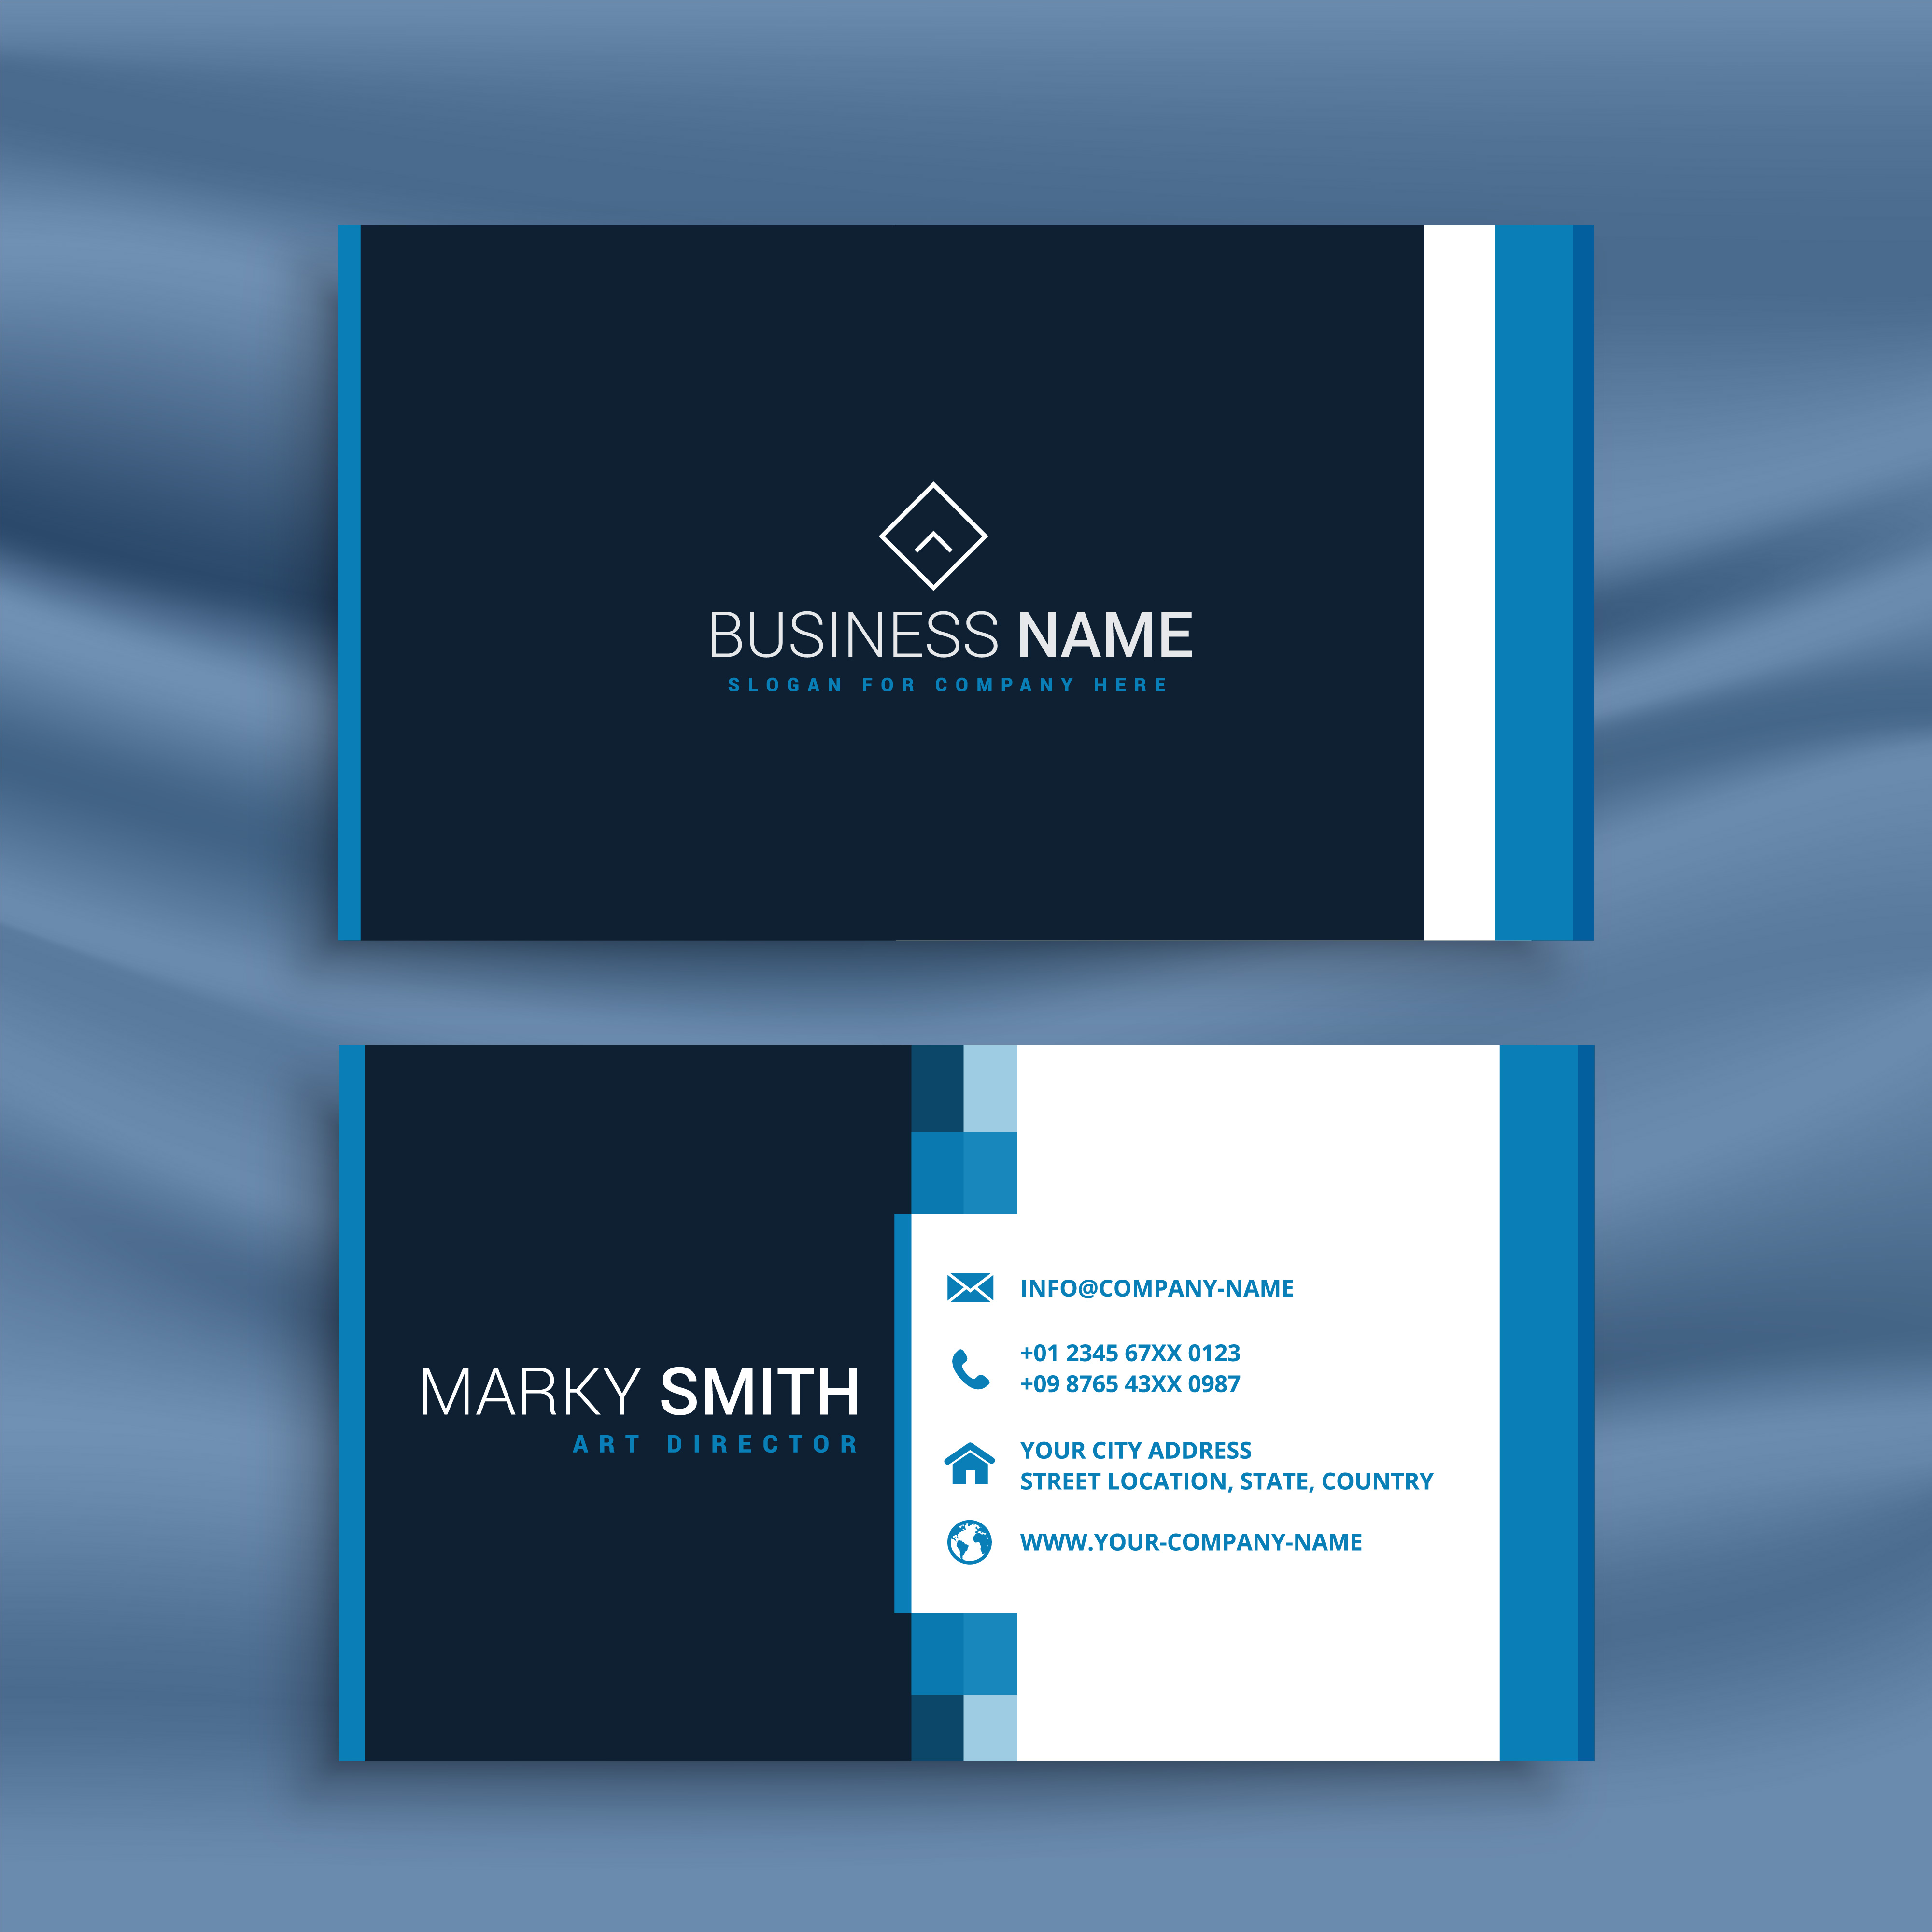 Professional blue business card template download free vector art professional blue business card template download free vector art stock graphics images flashek Choice Image